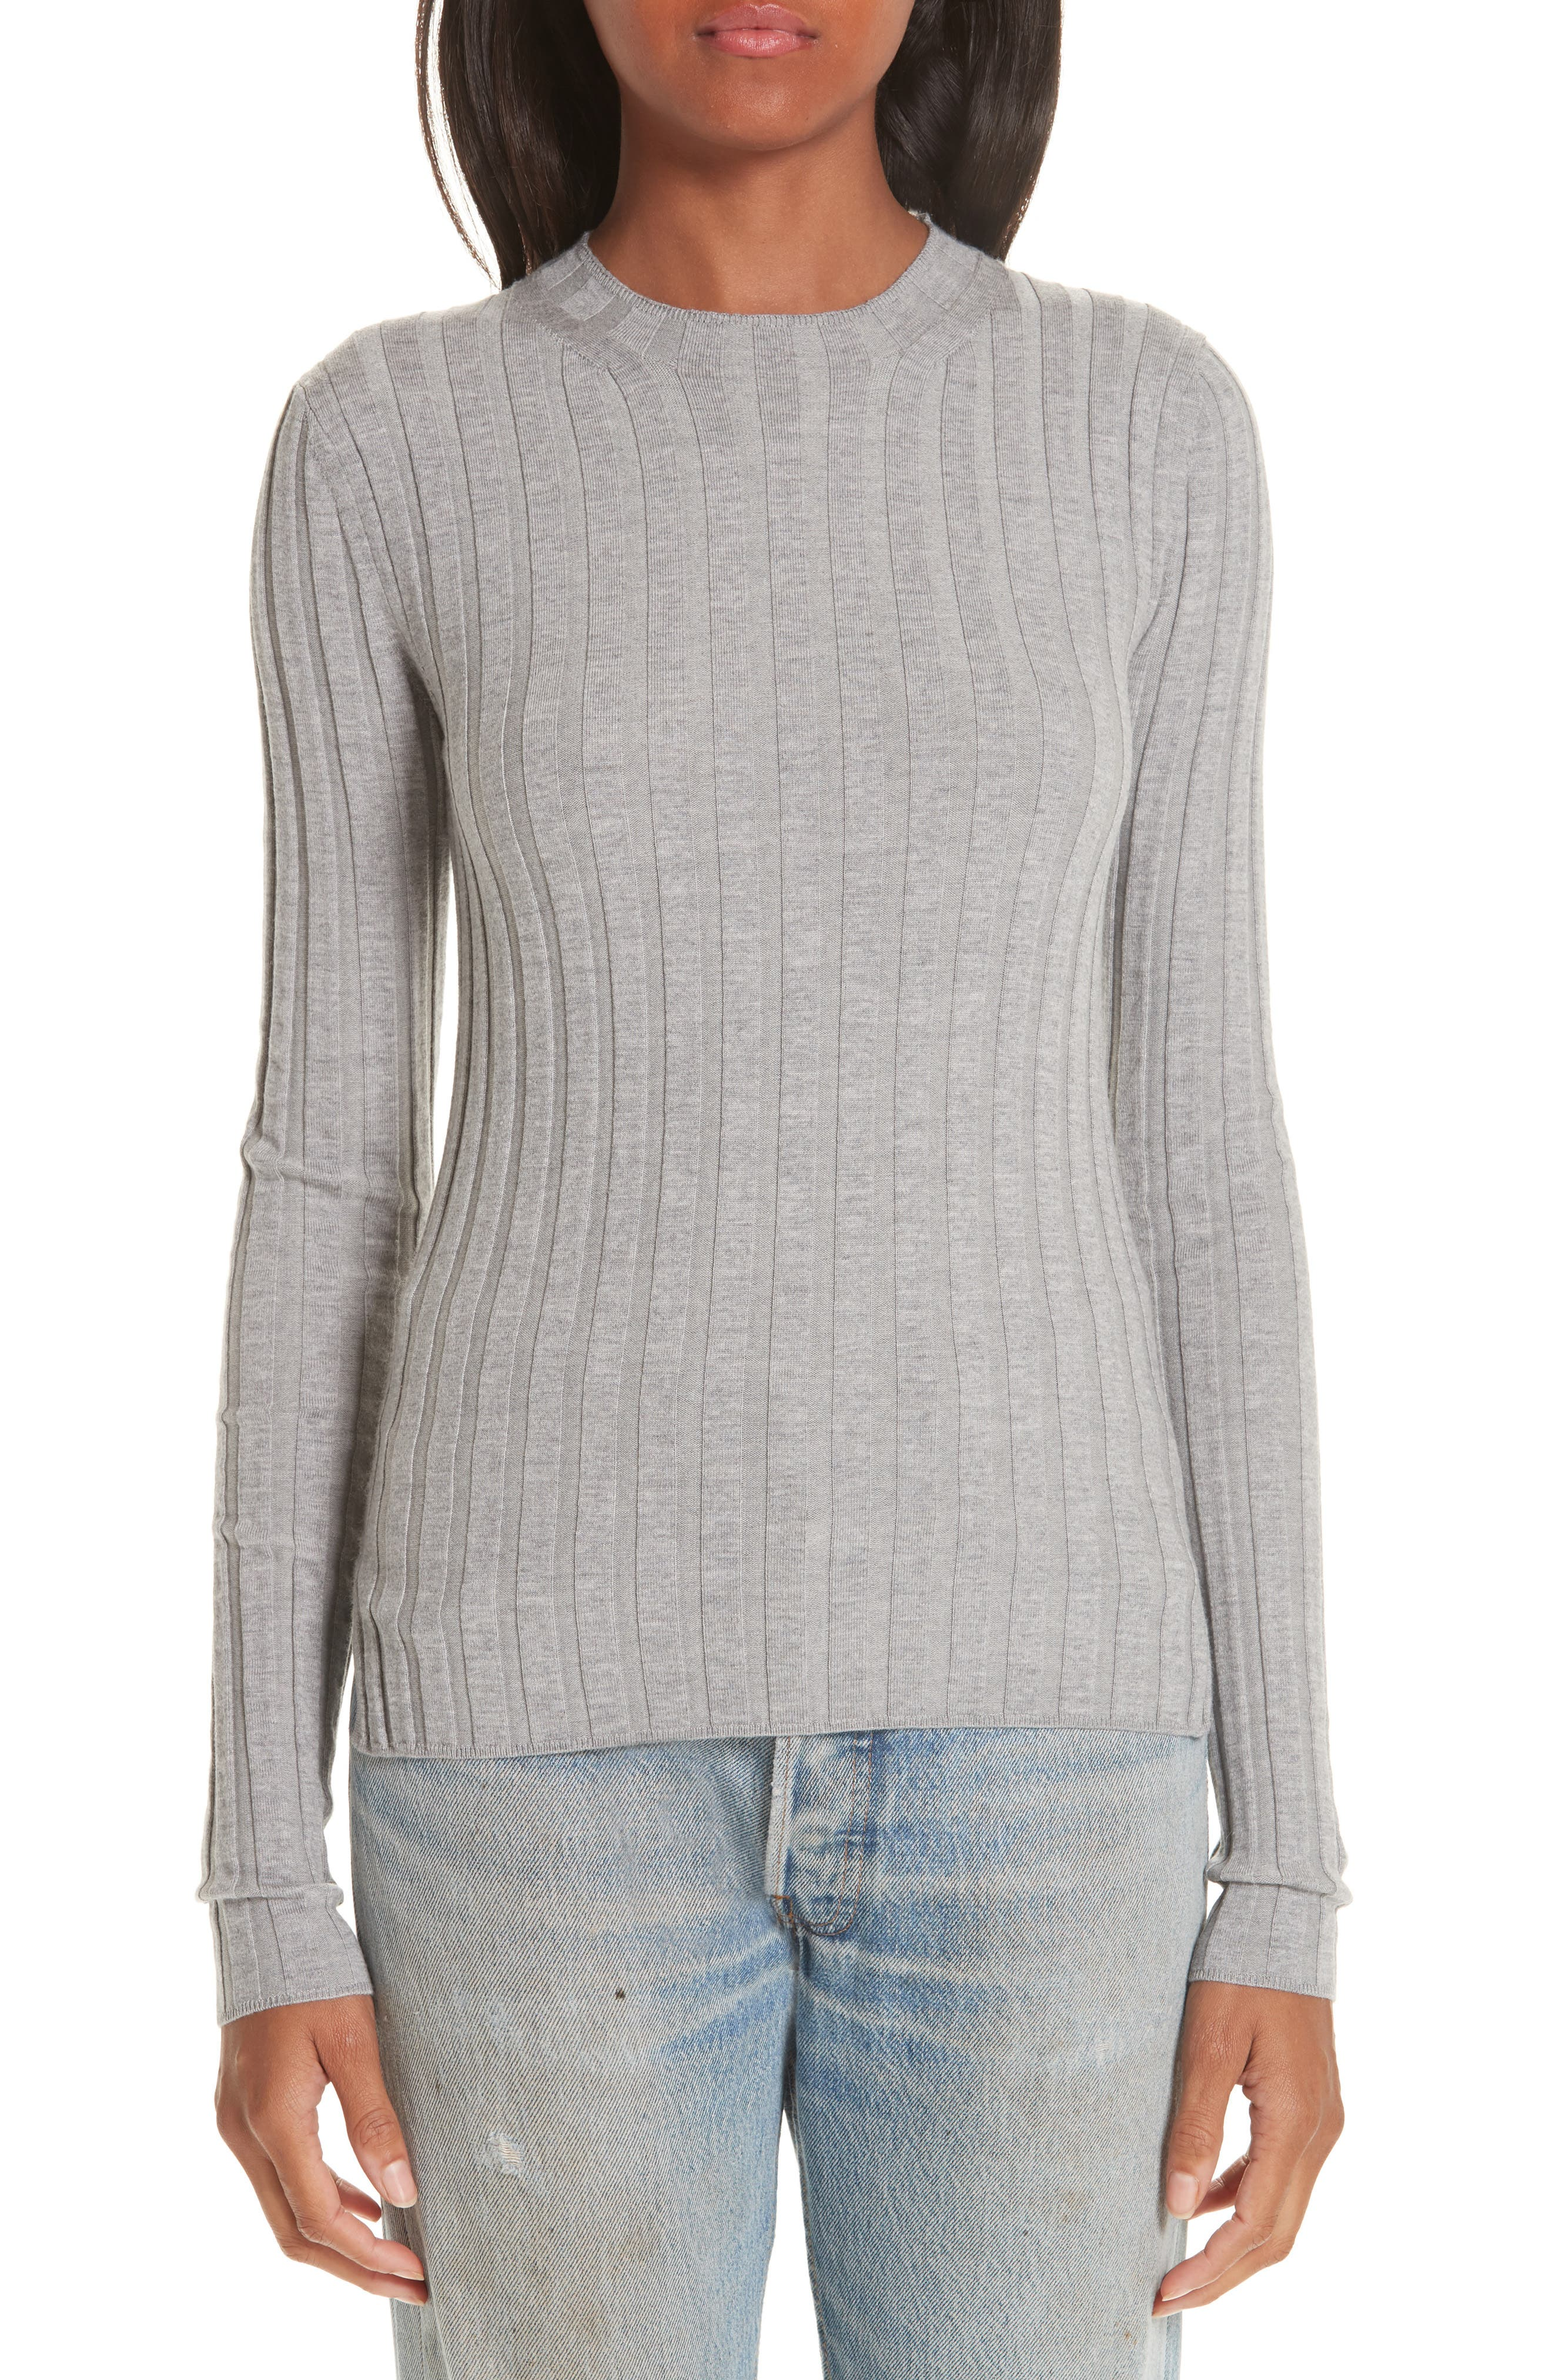 Carina Fitted Crewneck Sweater,                         Main,                         color, SILVER GREY